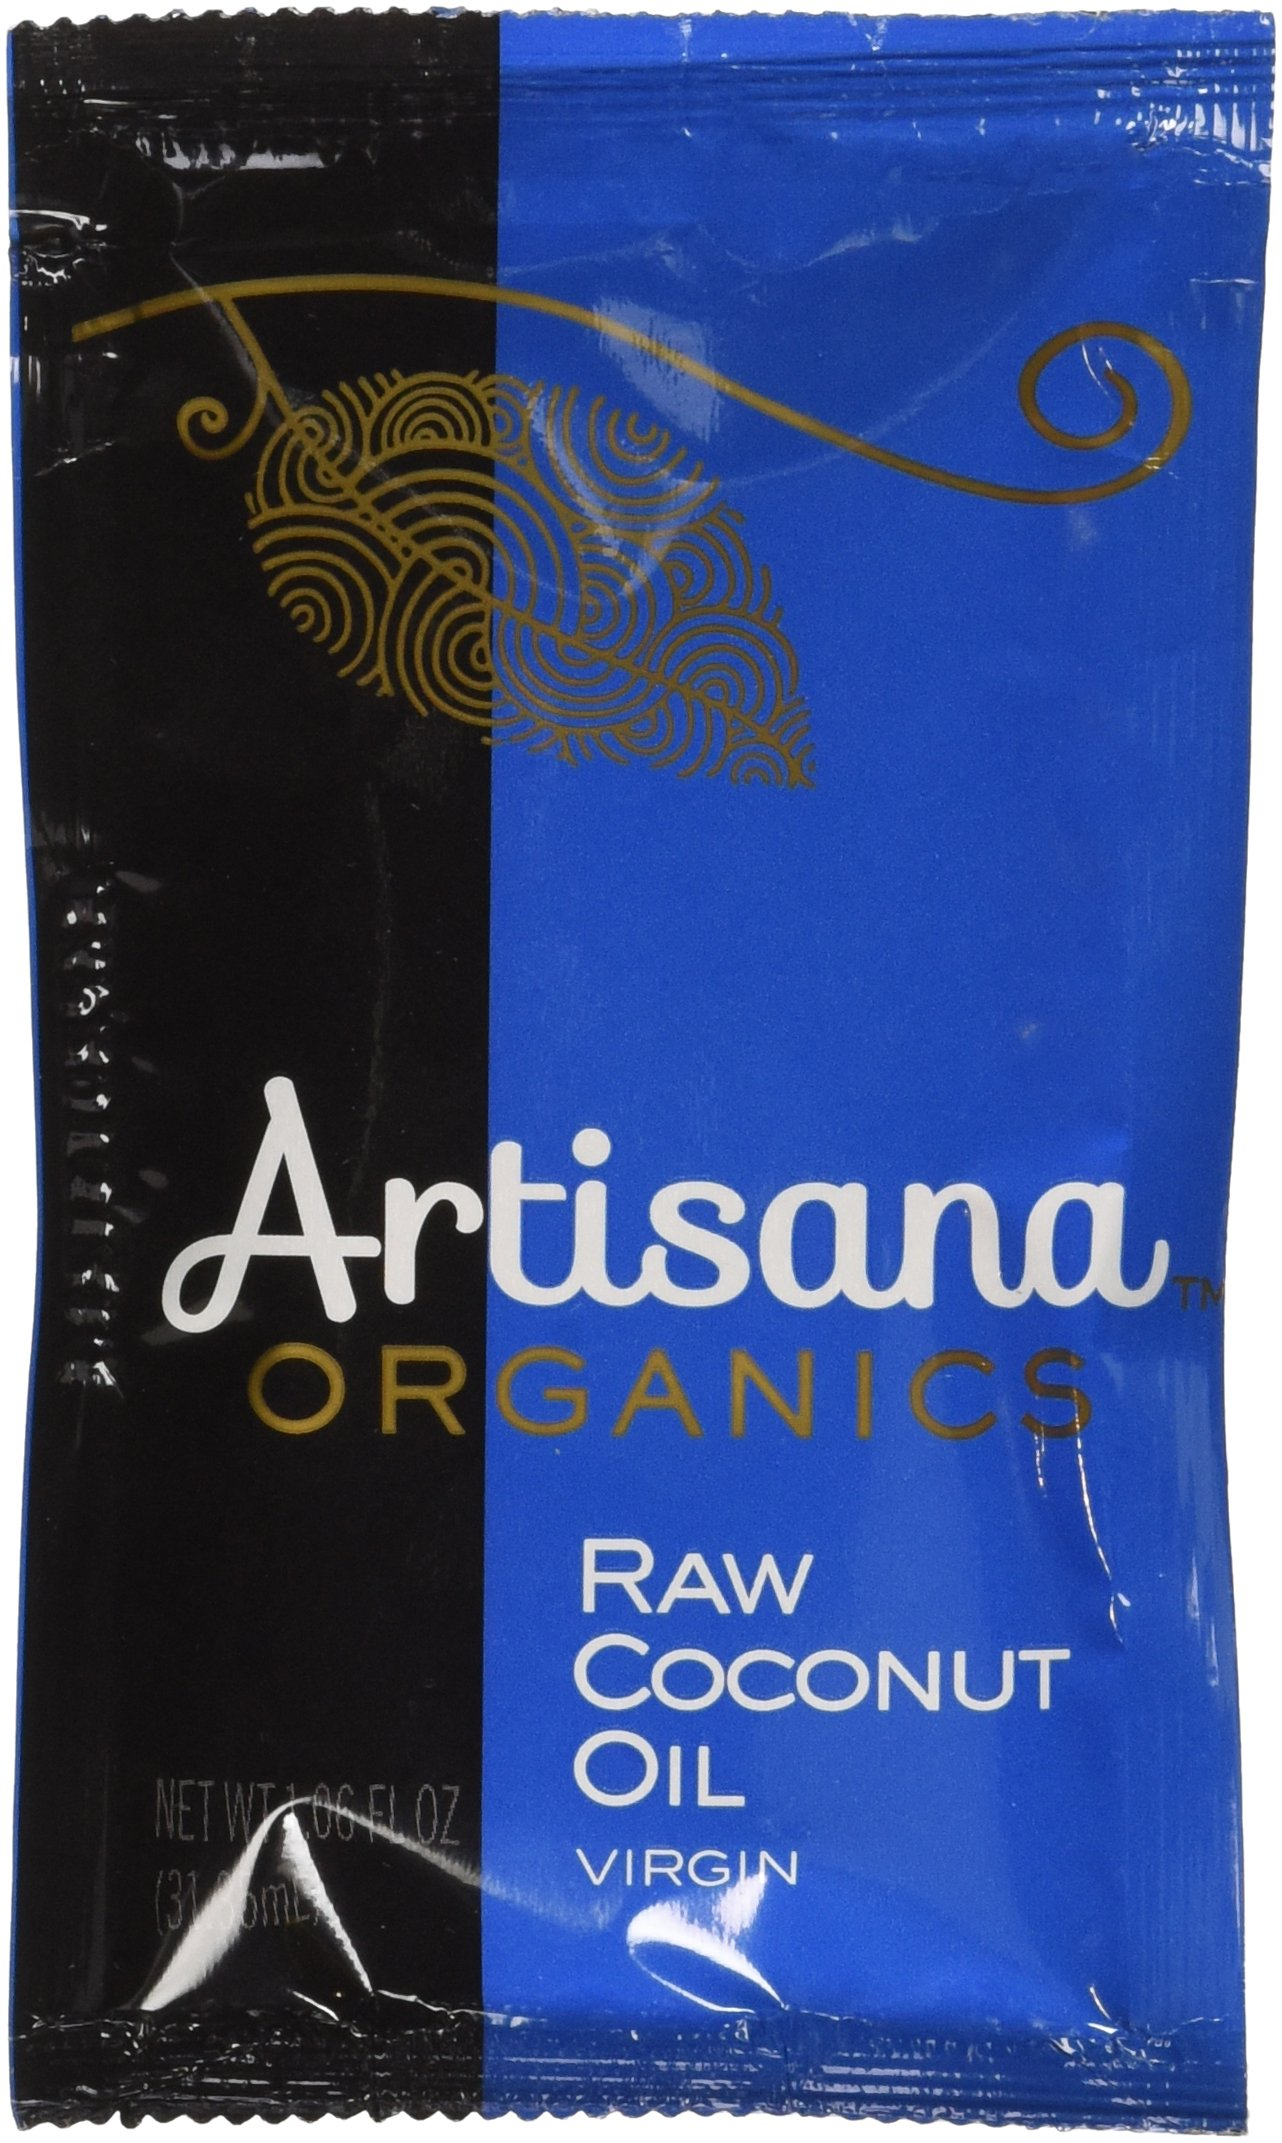 Artisana Organics - Coconut Oil Extra Virgin, Non-Hydrogenated and Cholesterol-Free, USDA and Non-GMO (10-Pack,1.06 oz)